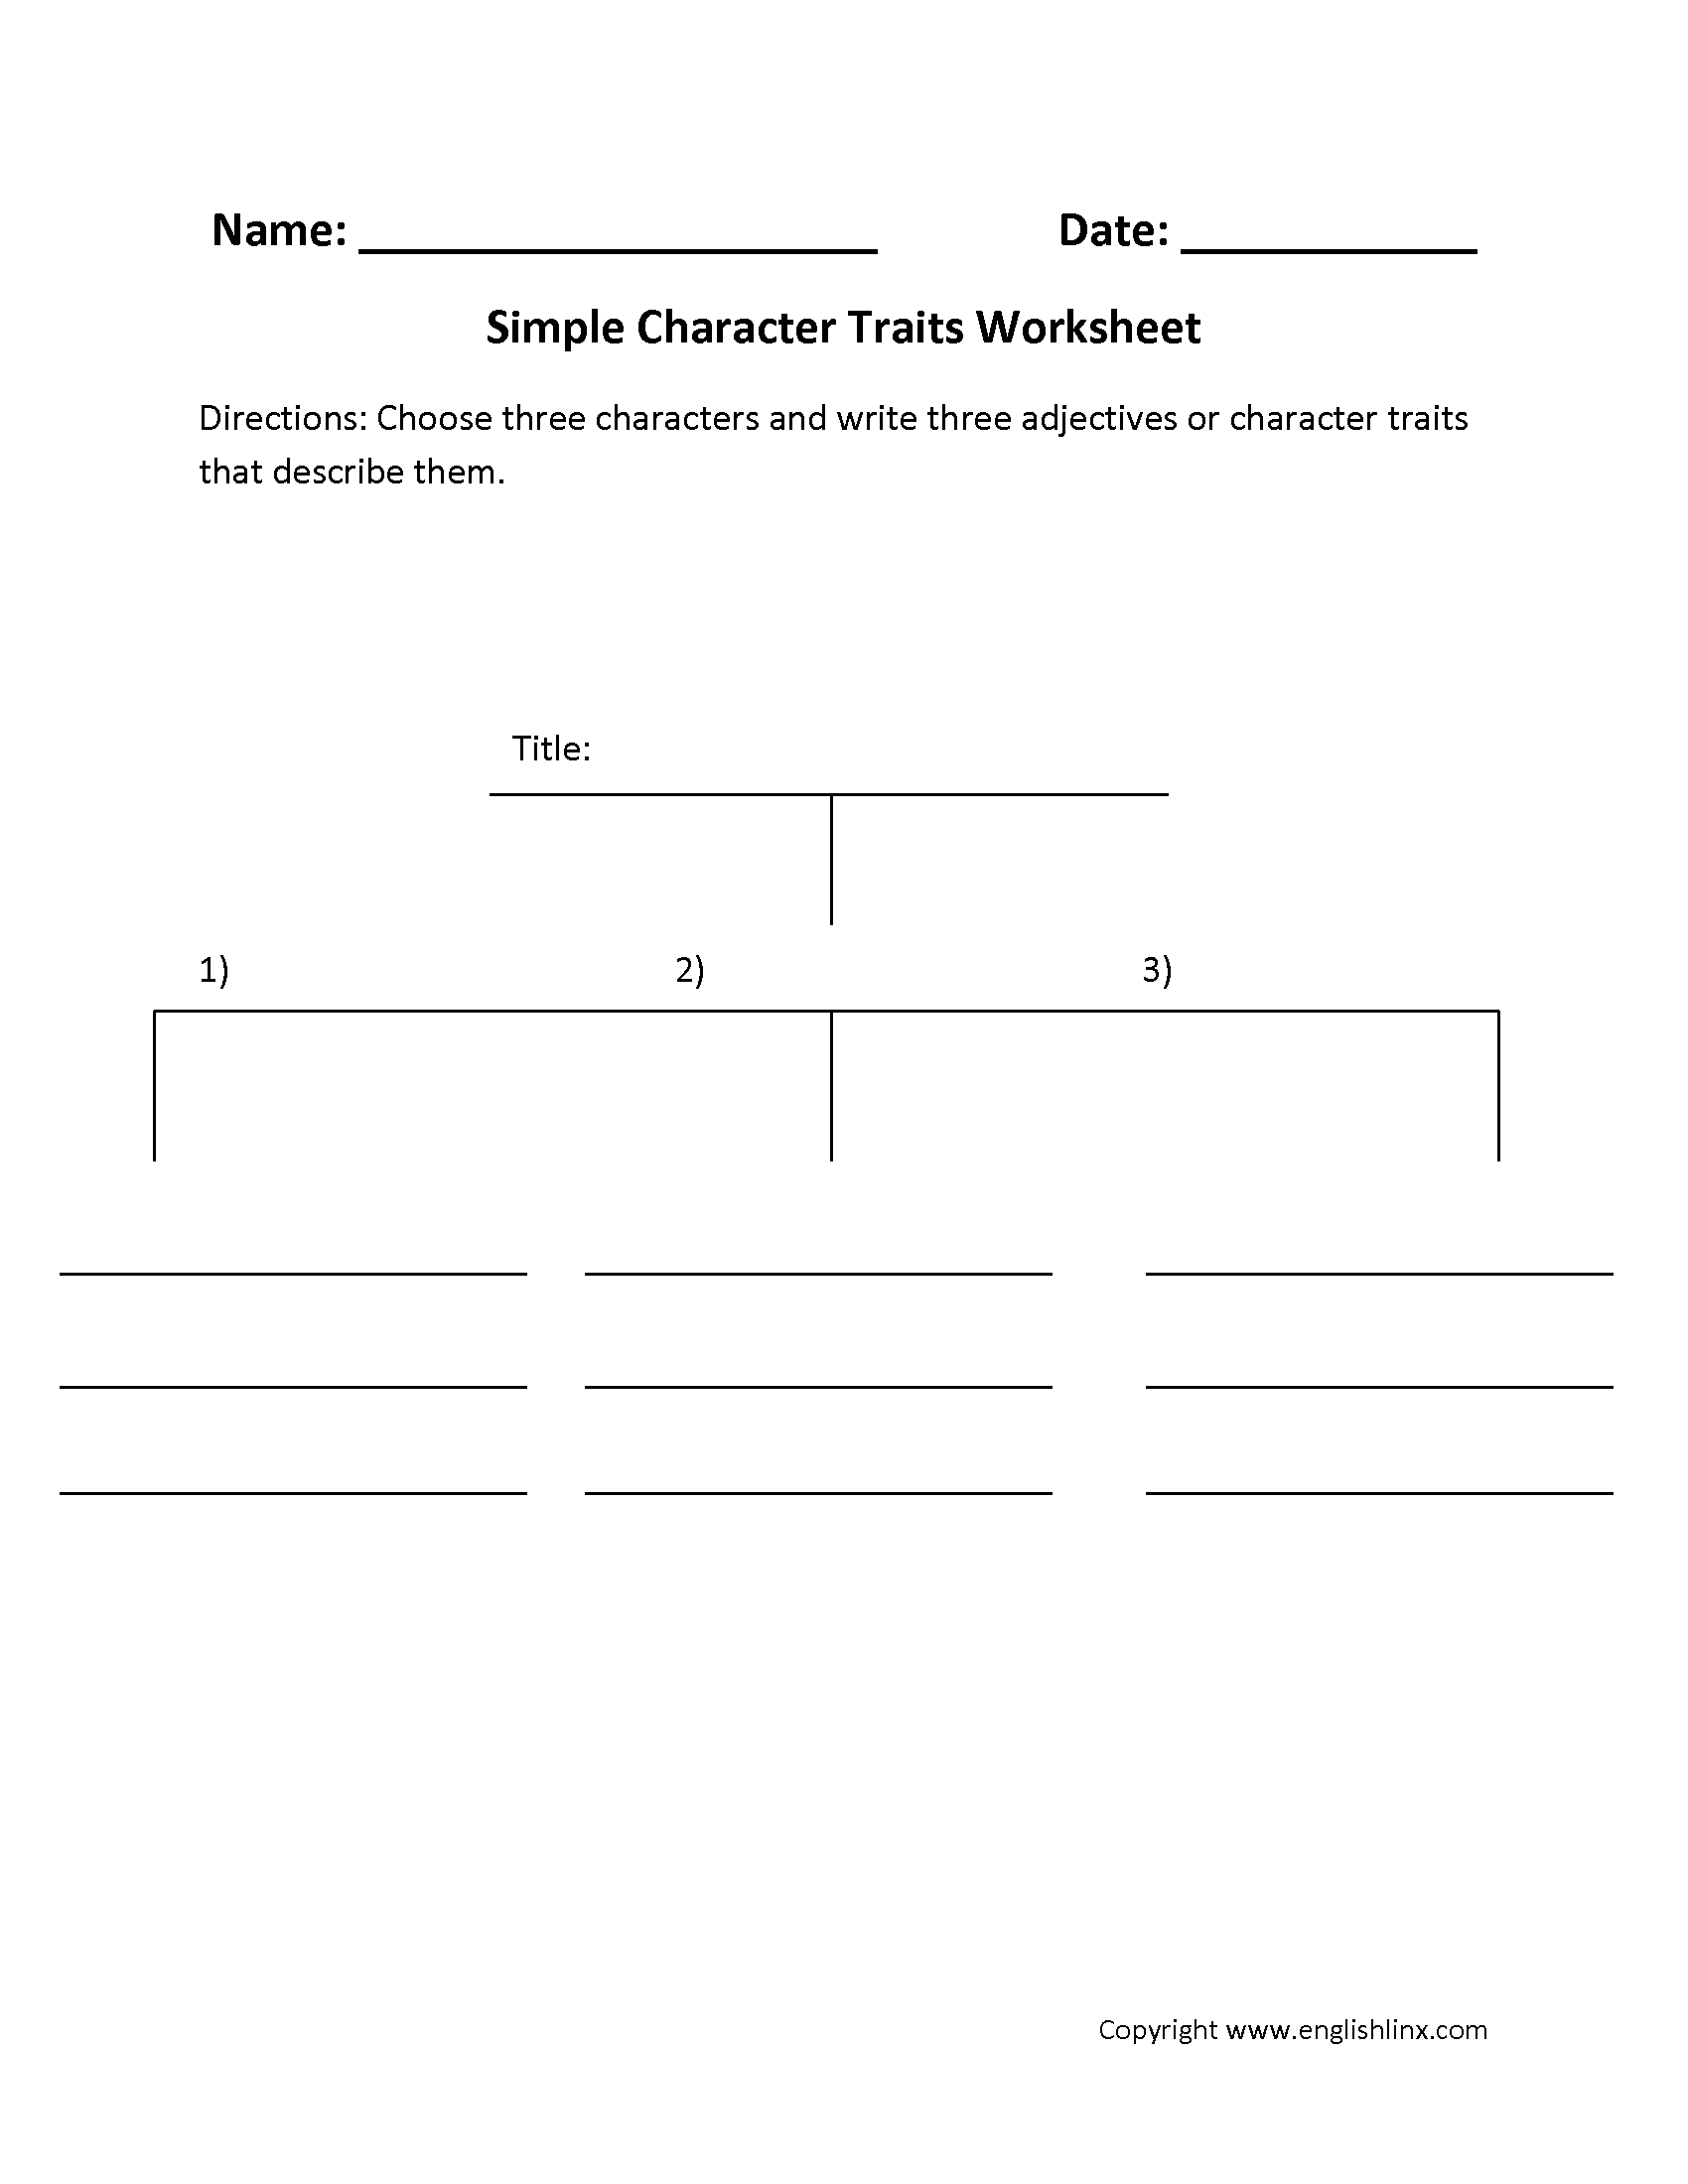 Characterization Worksheet 1 Answer Key